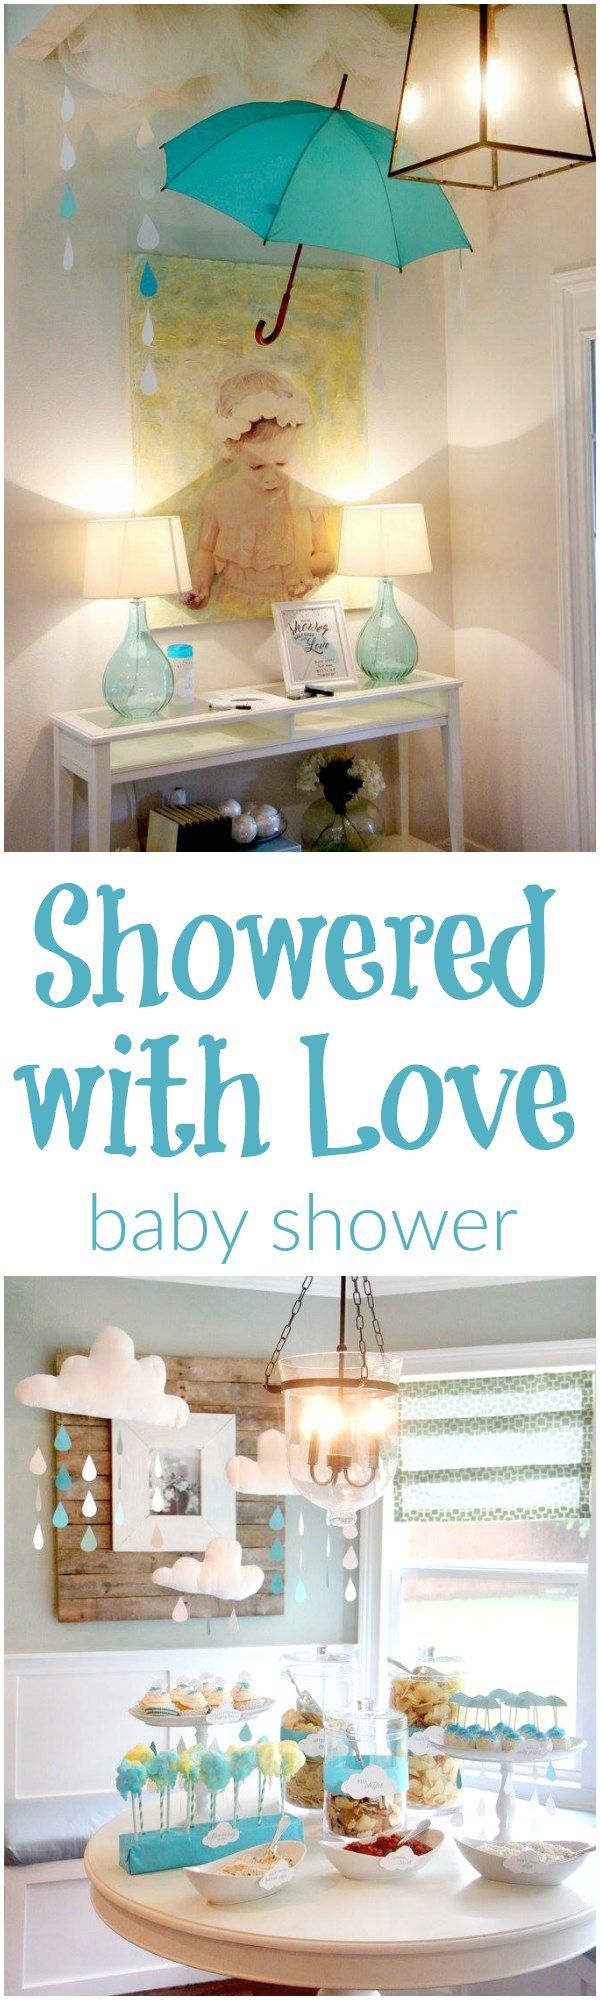 Showered with Love // A baby shower theme full of raindrops, umbrellas, clouds and love! <3